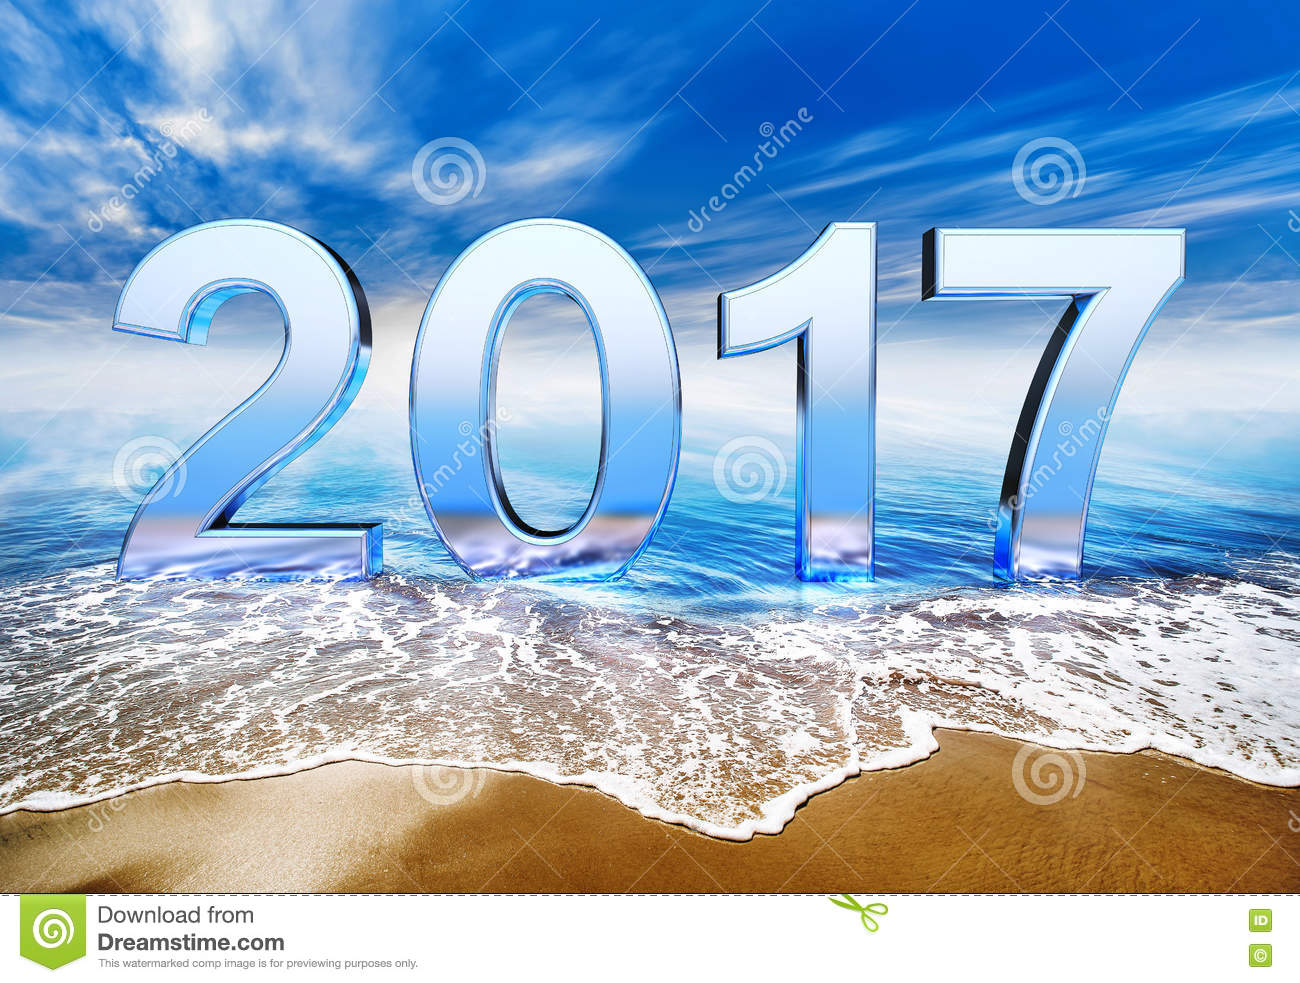 2017 Icon Stock Photos, Images, & Pictures - 9,830 Images